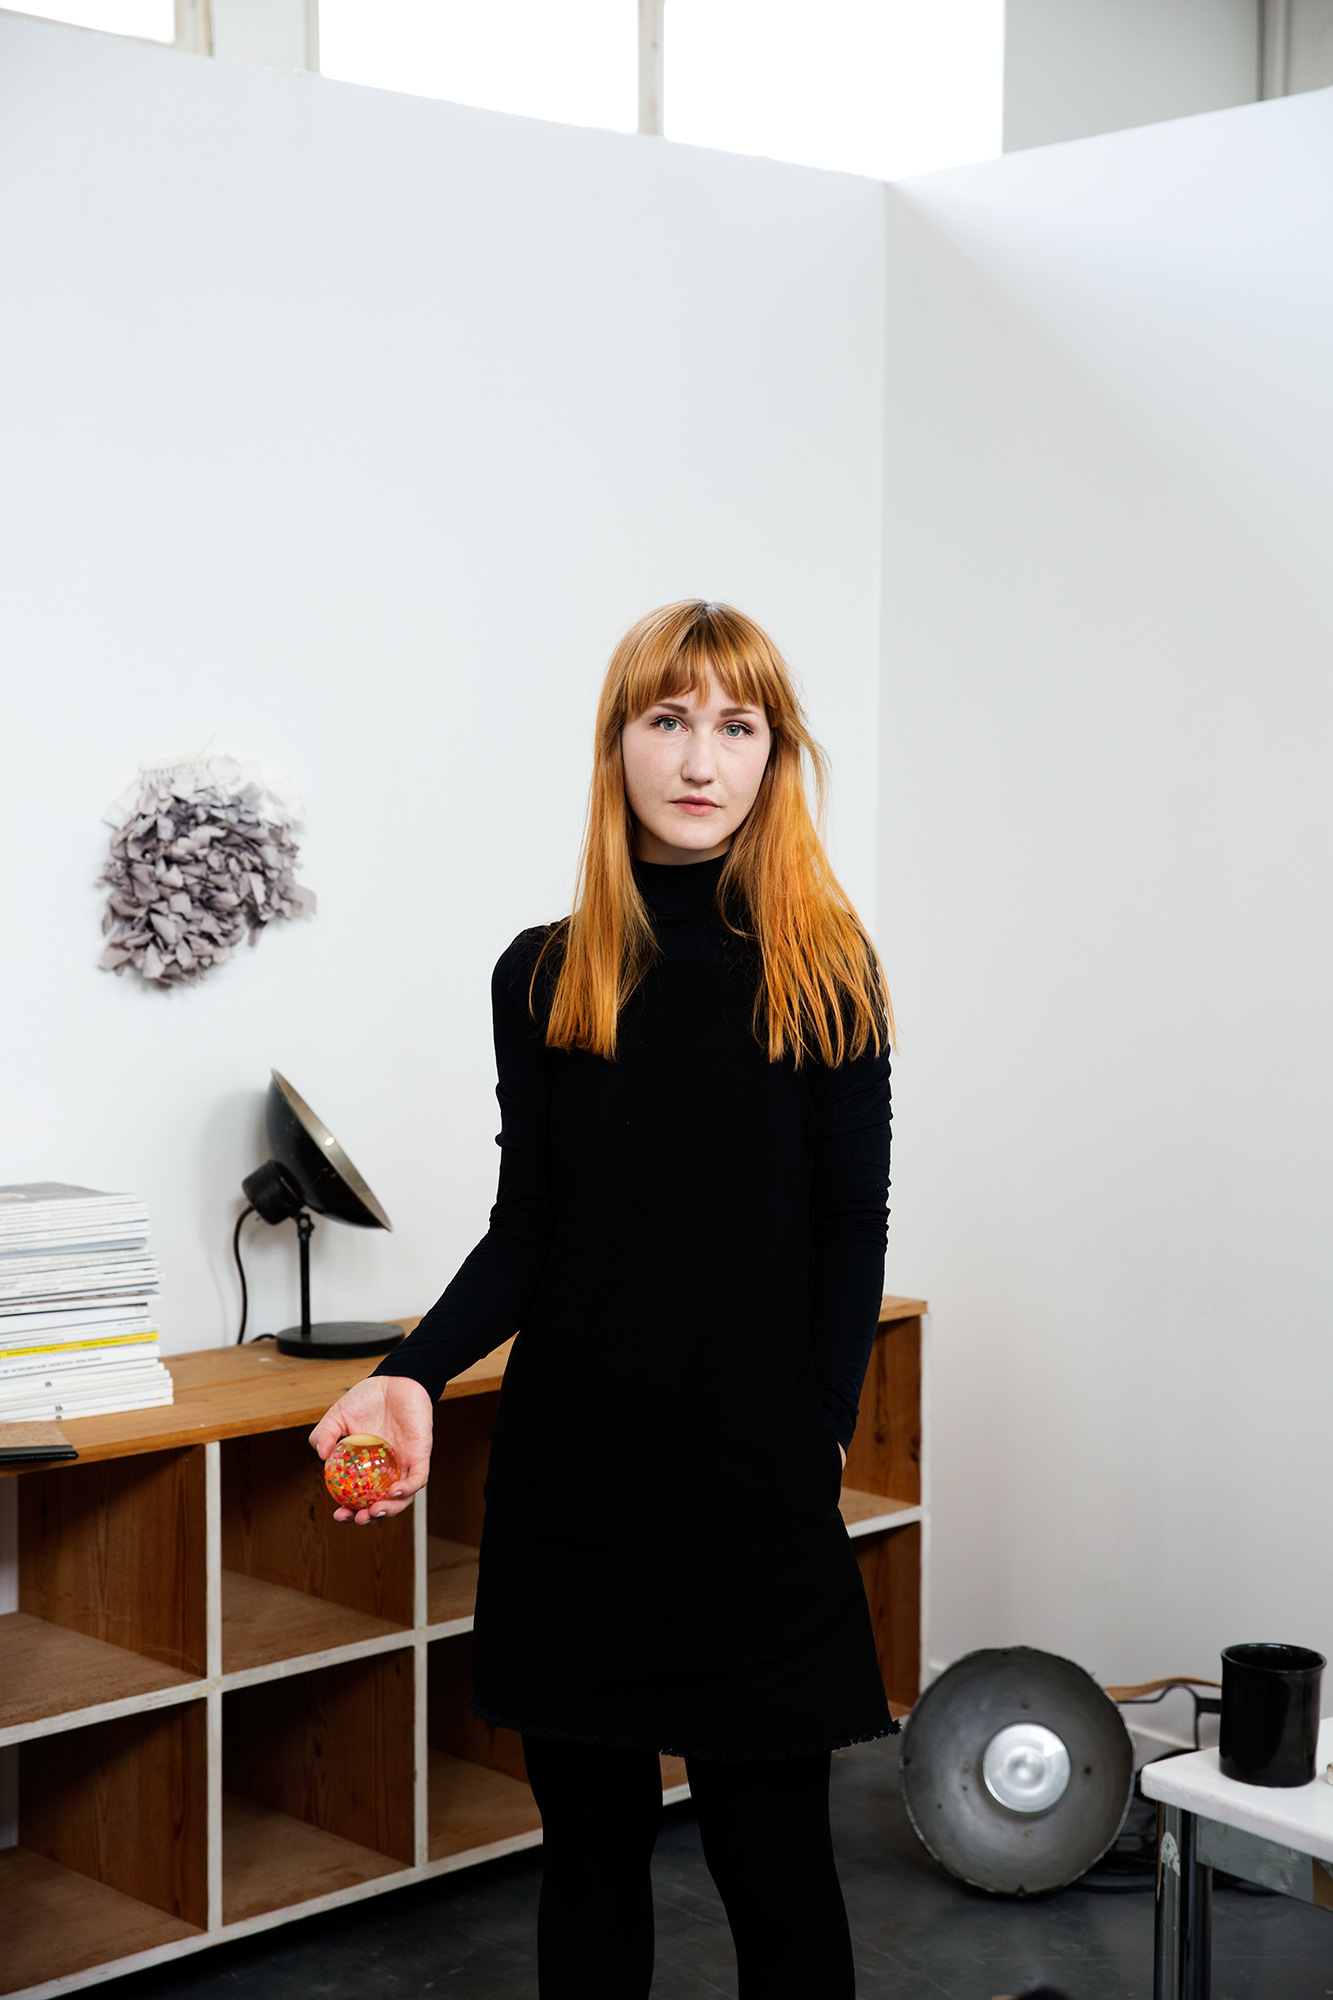 A red-haired woman dressed in black stands between a desk and a sideboard in a space with white provisional walls.